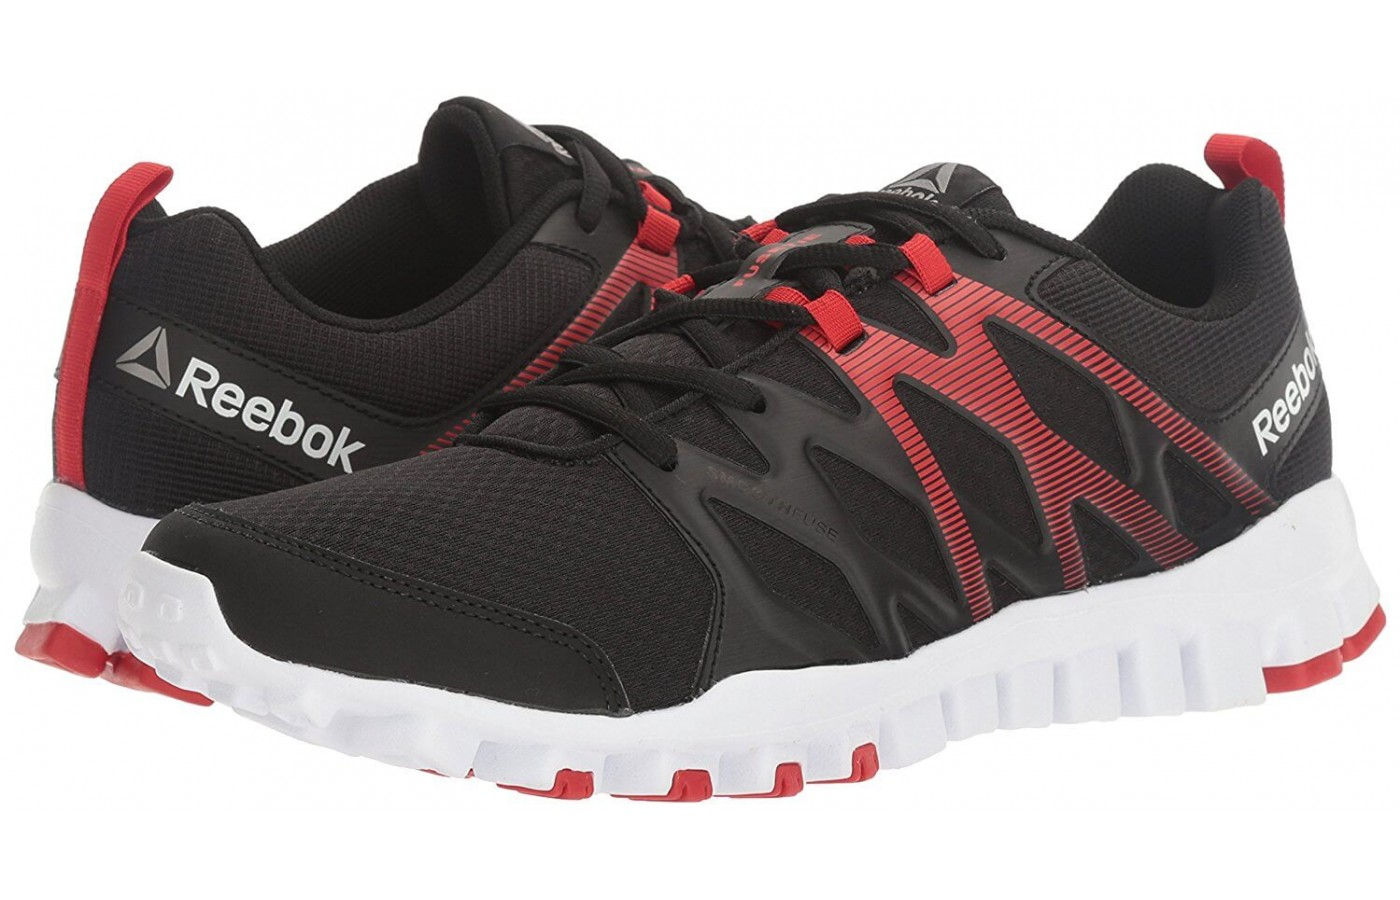 The Reebok RealFlex Train 4.0 features a protective toe bumper